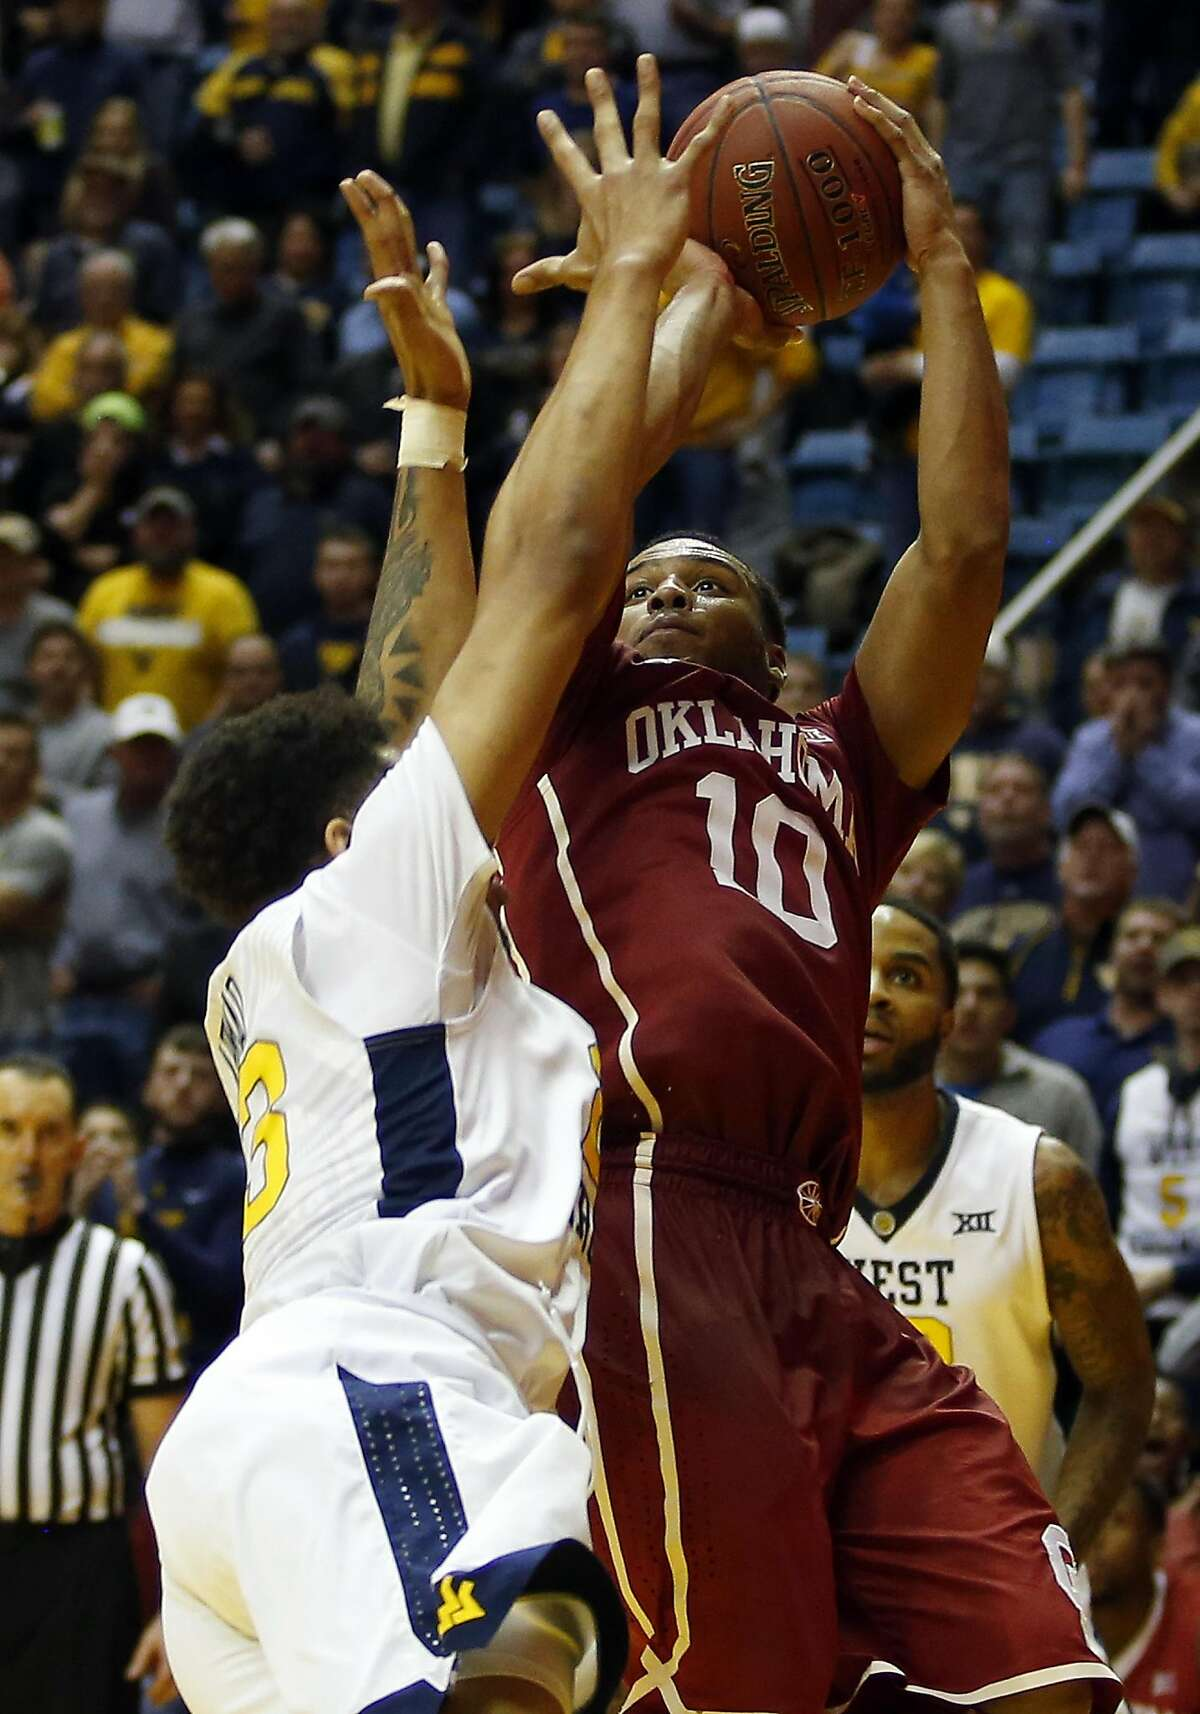 MORGANTOWN, WV - JANUARY 18: Jordan Woodard #10 of the Oklahoma Sooners pulls up for a shot nearing the end of regulation against Esa Ahmad #23 of the West Virginia Mountaineers at the WVU Coliseum on January 18, 2017 in Morgantown, West Virginia. (Photo by Justin K. Aller/Getty Images)